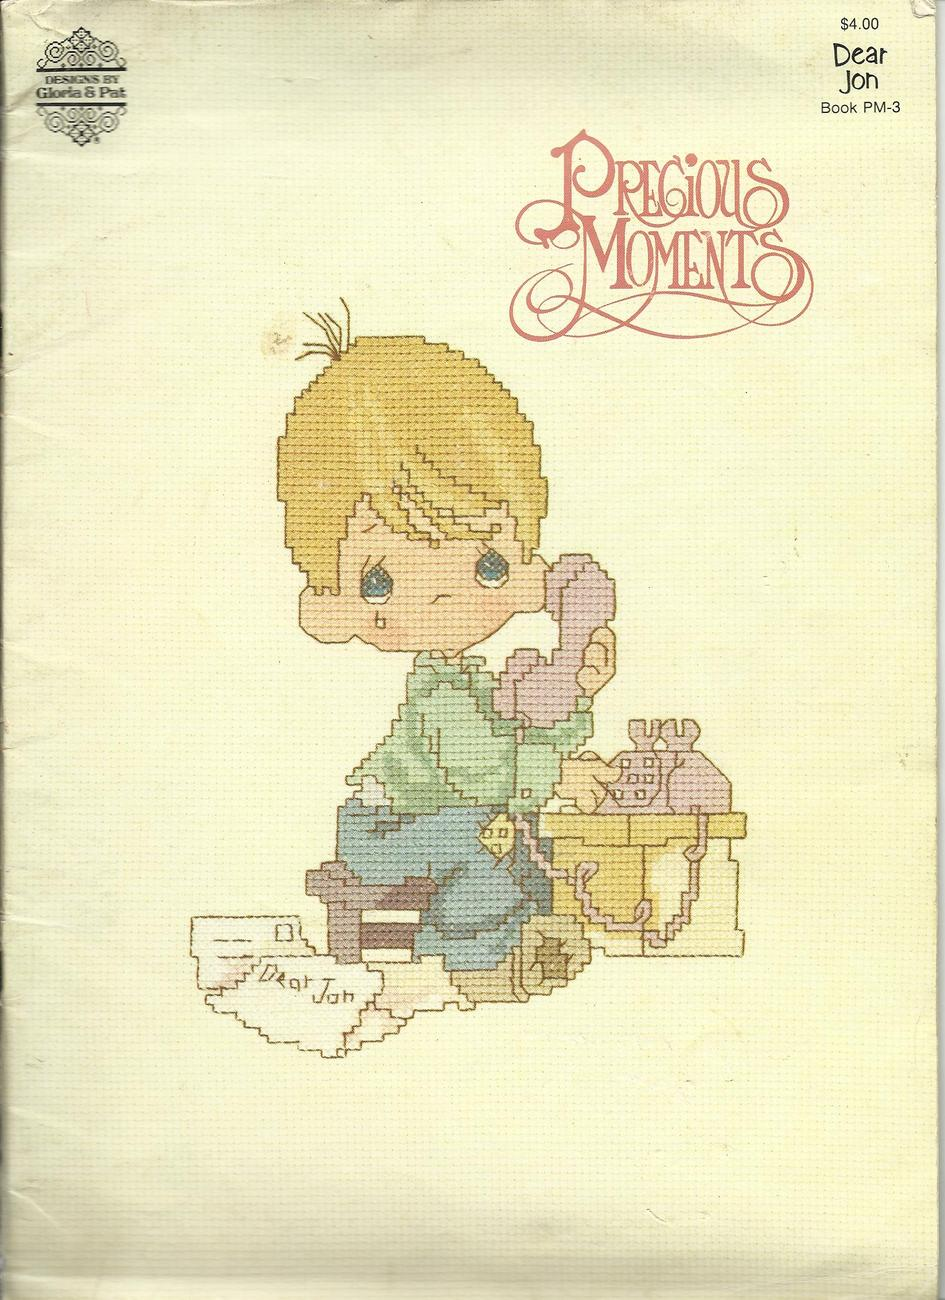 Precious Moments dear Jon 1982 counted thread Cross Stitch patterns